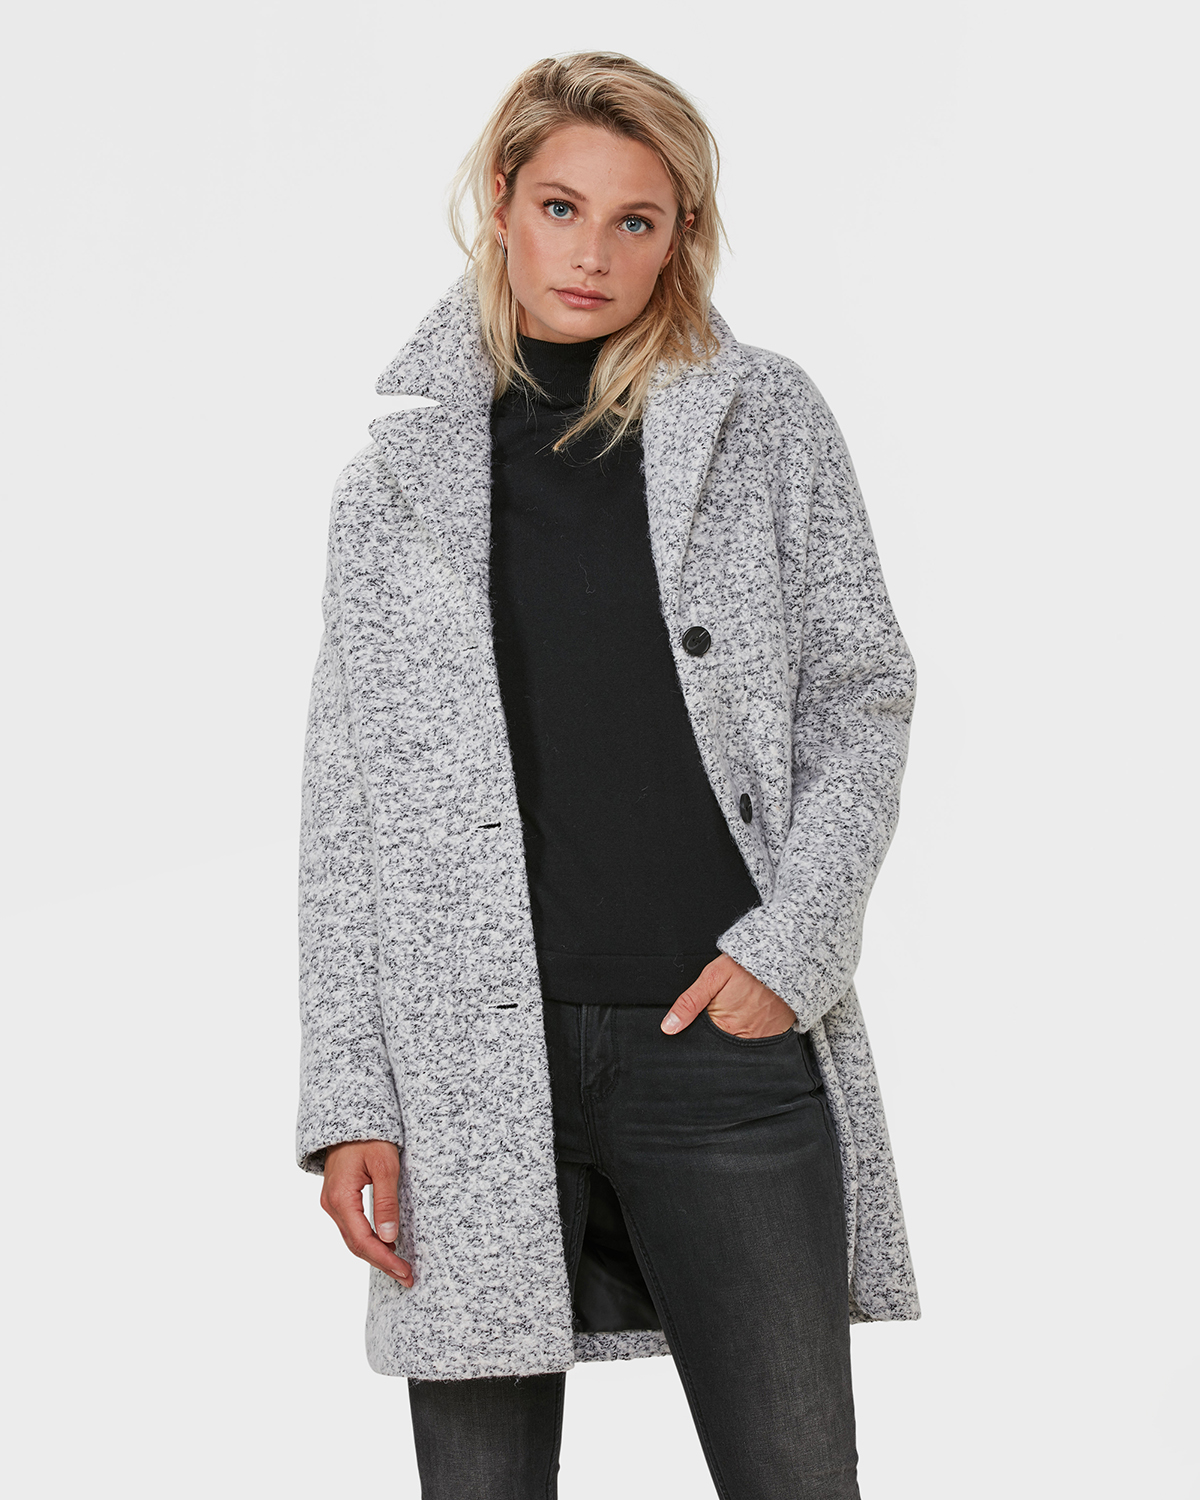 Winterjas Dames Mantel.Dames Wool Blend Cocoon Jas 79376105 We Fashion